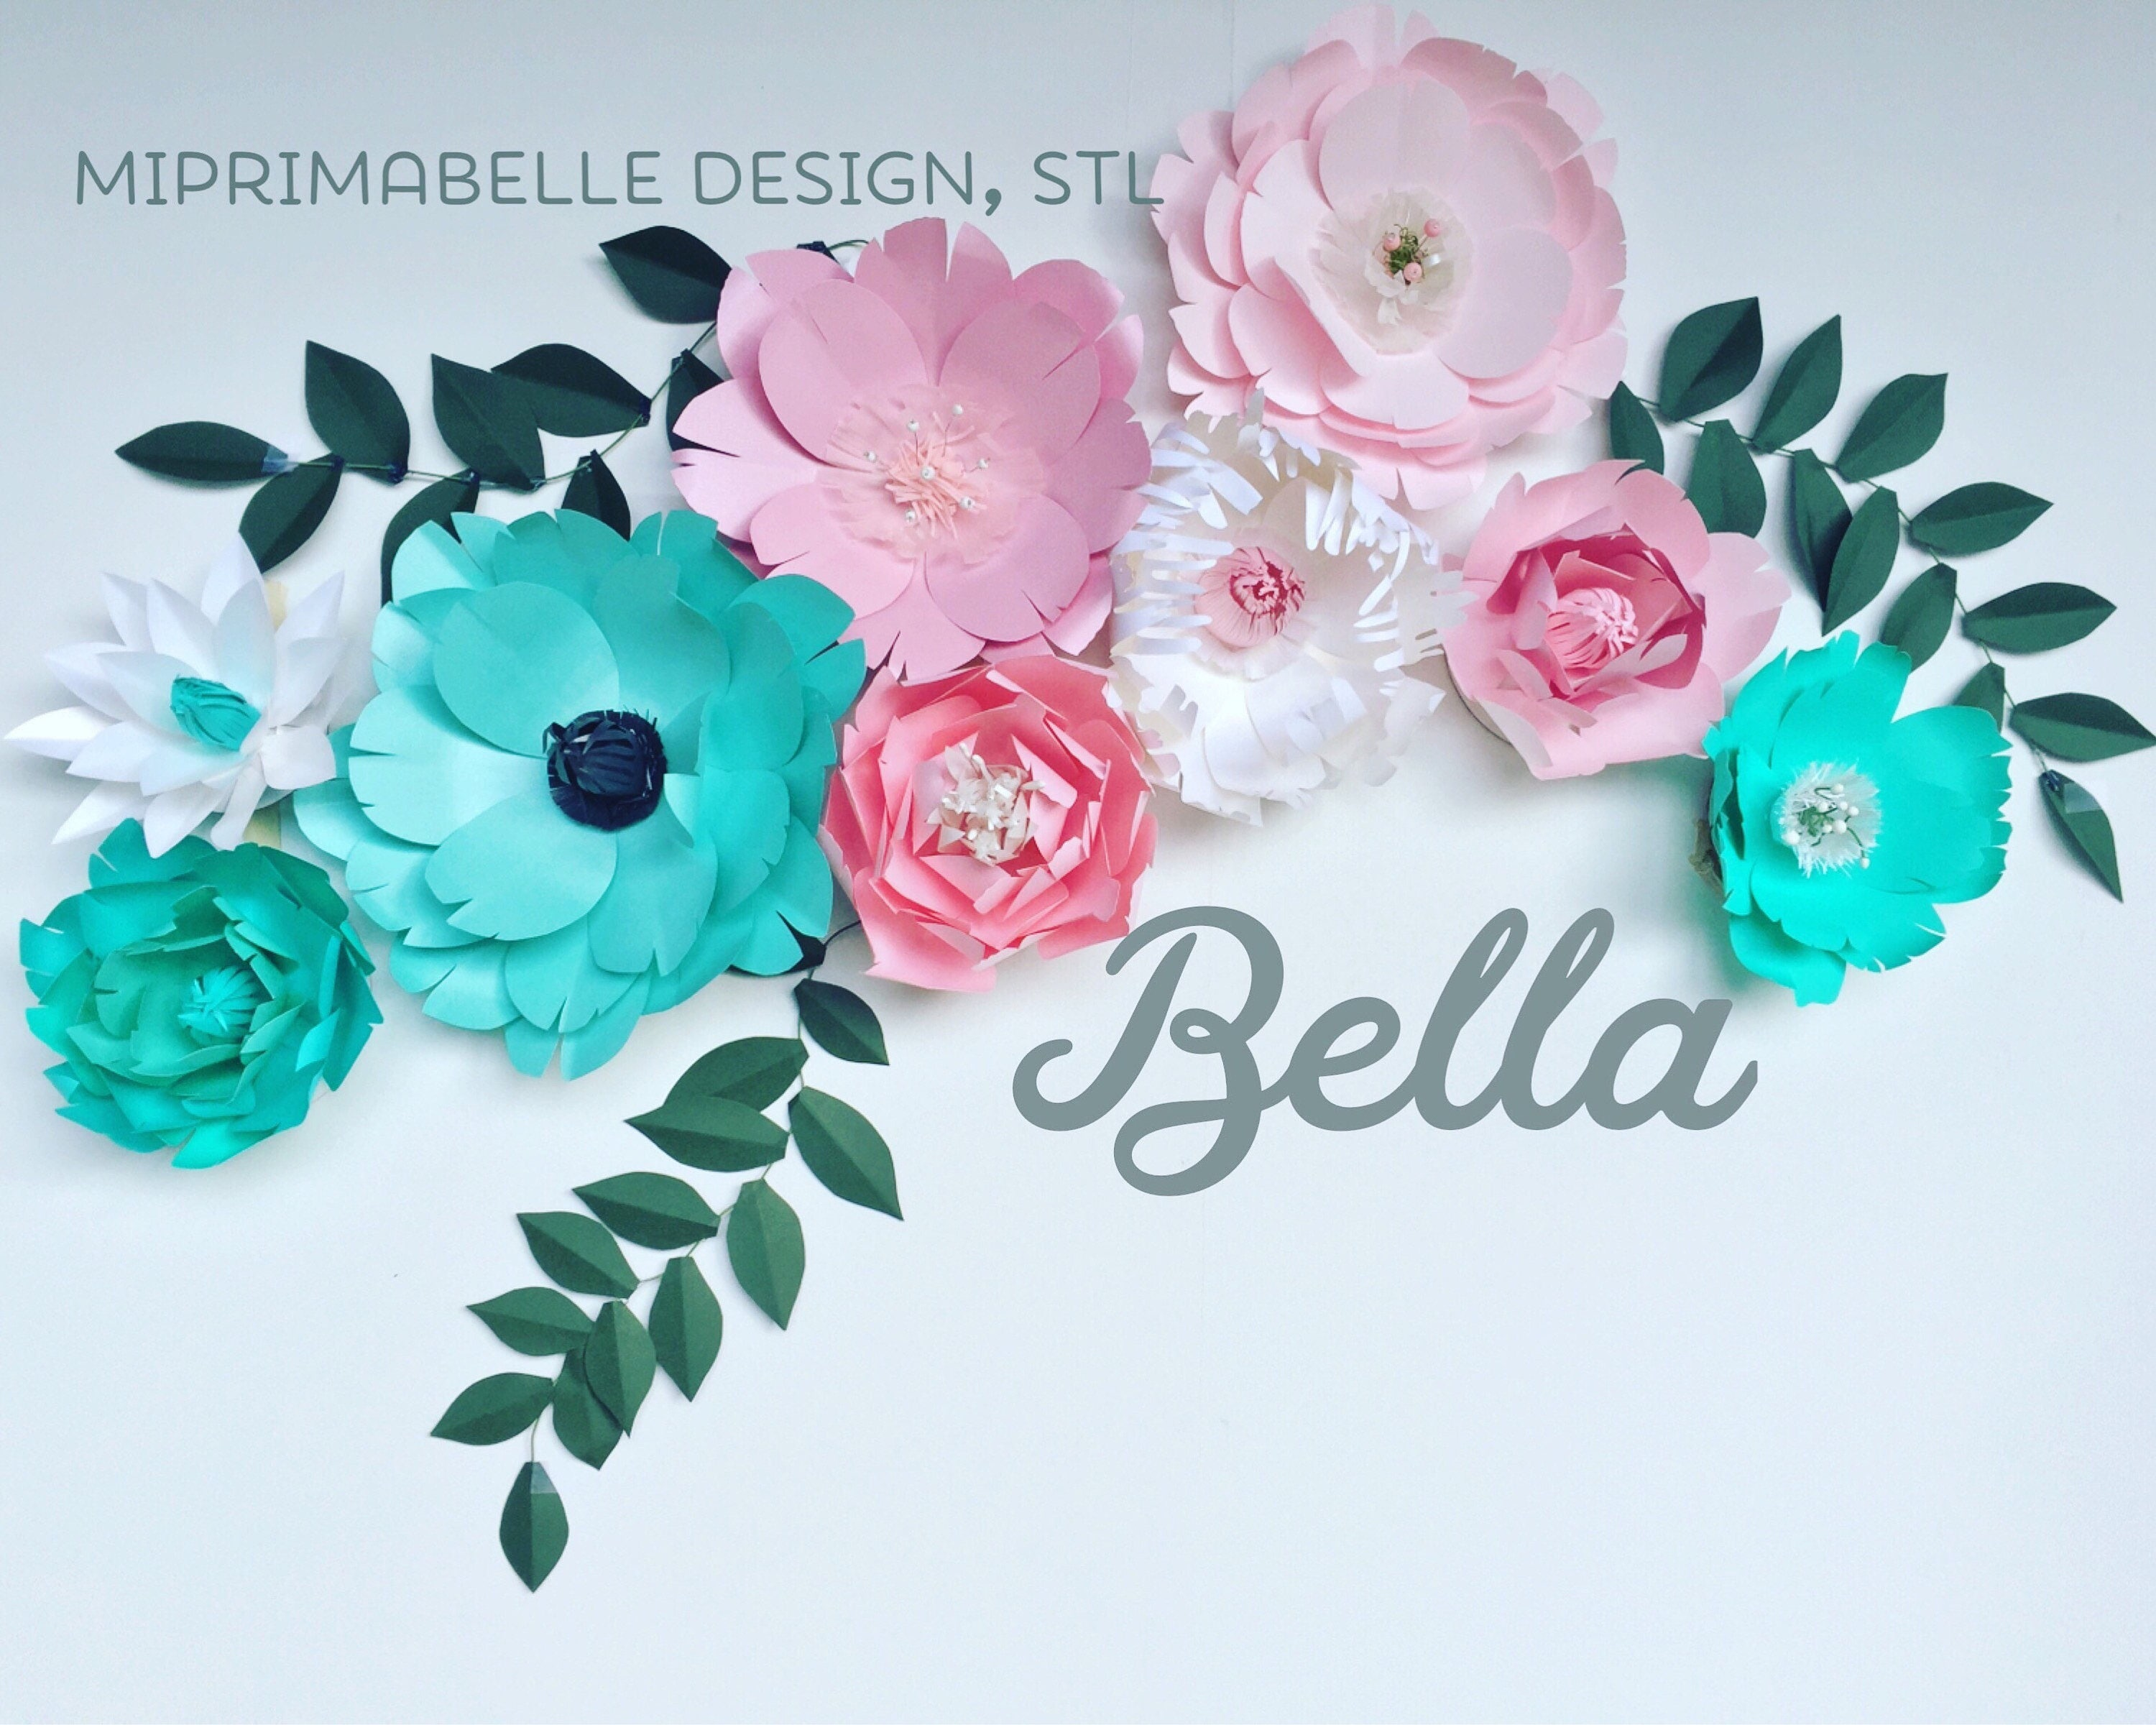 Turquoise wall decor paper flowers wall decor baby girl nursery teal turquoise wall decor paper flowers wall decor baby girl nursery teal room decor paper flowers large pink giant paper flower wedding backdrop mightylinksfo